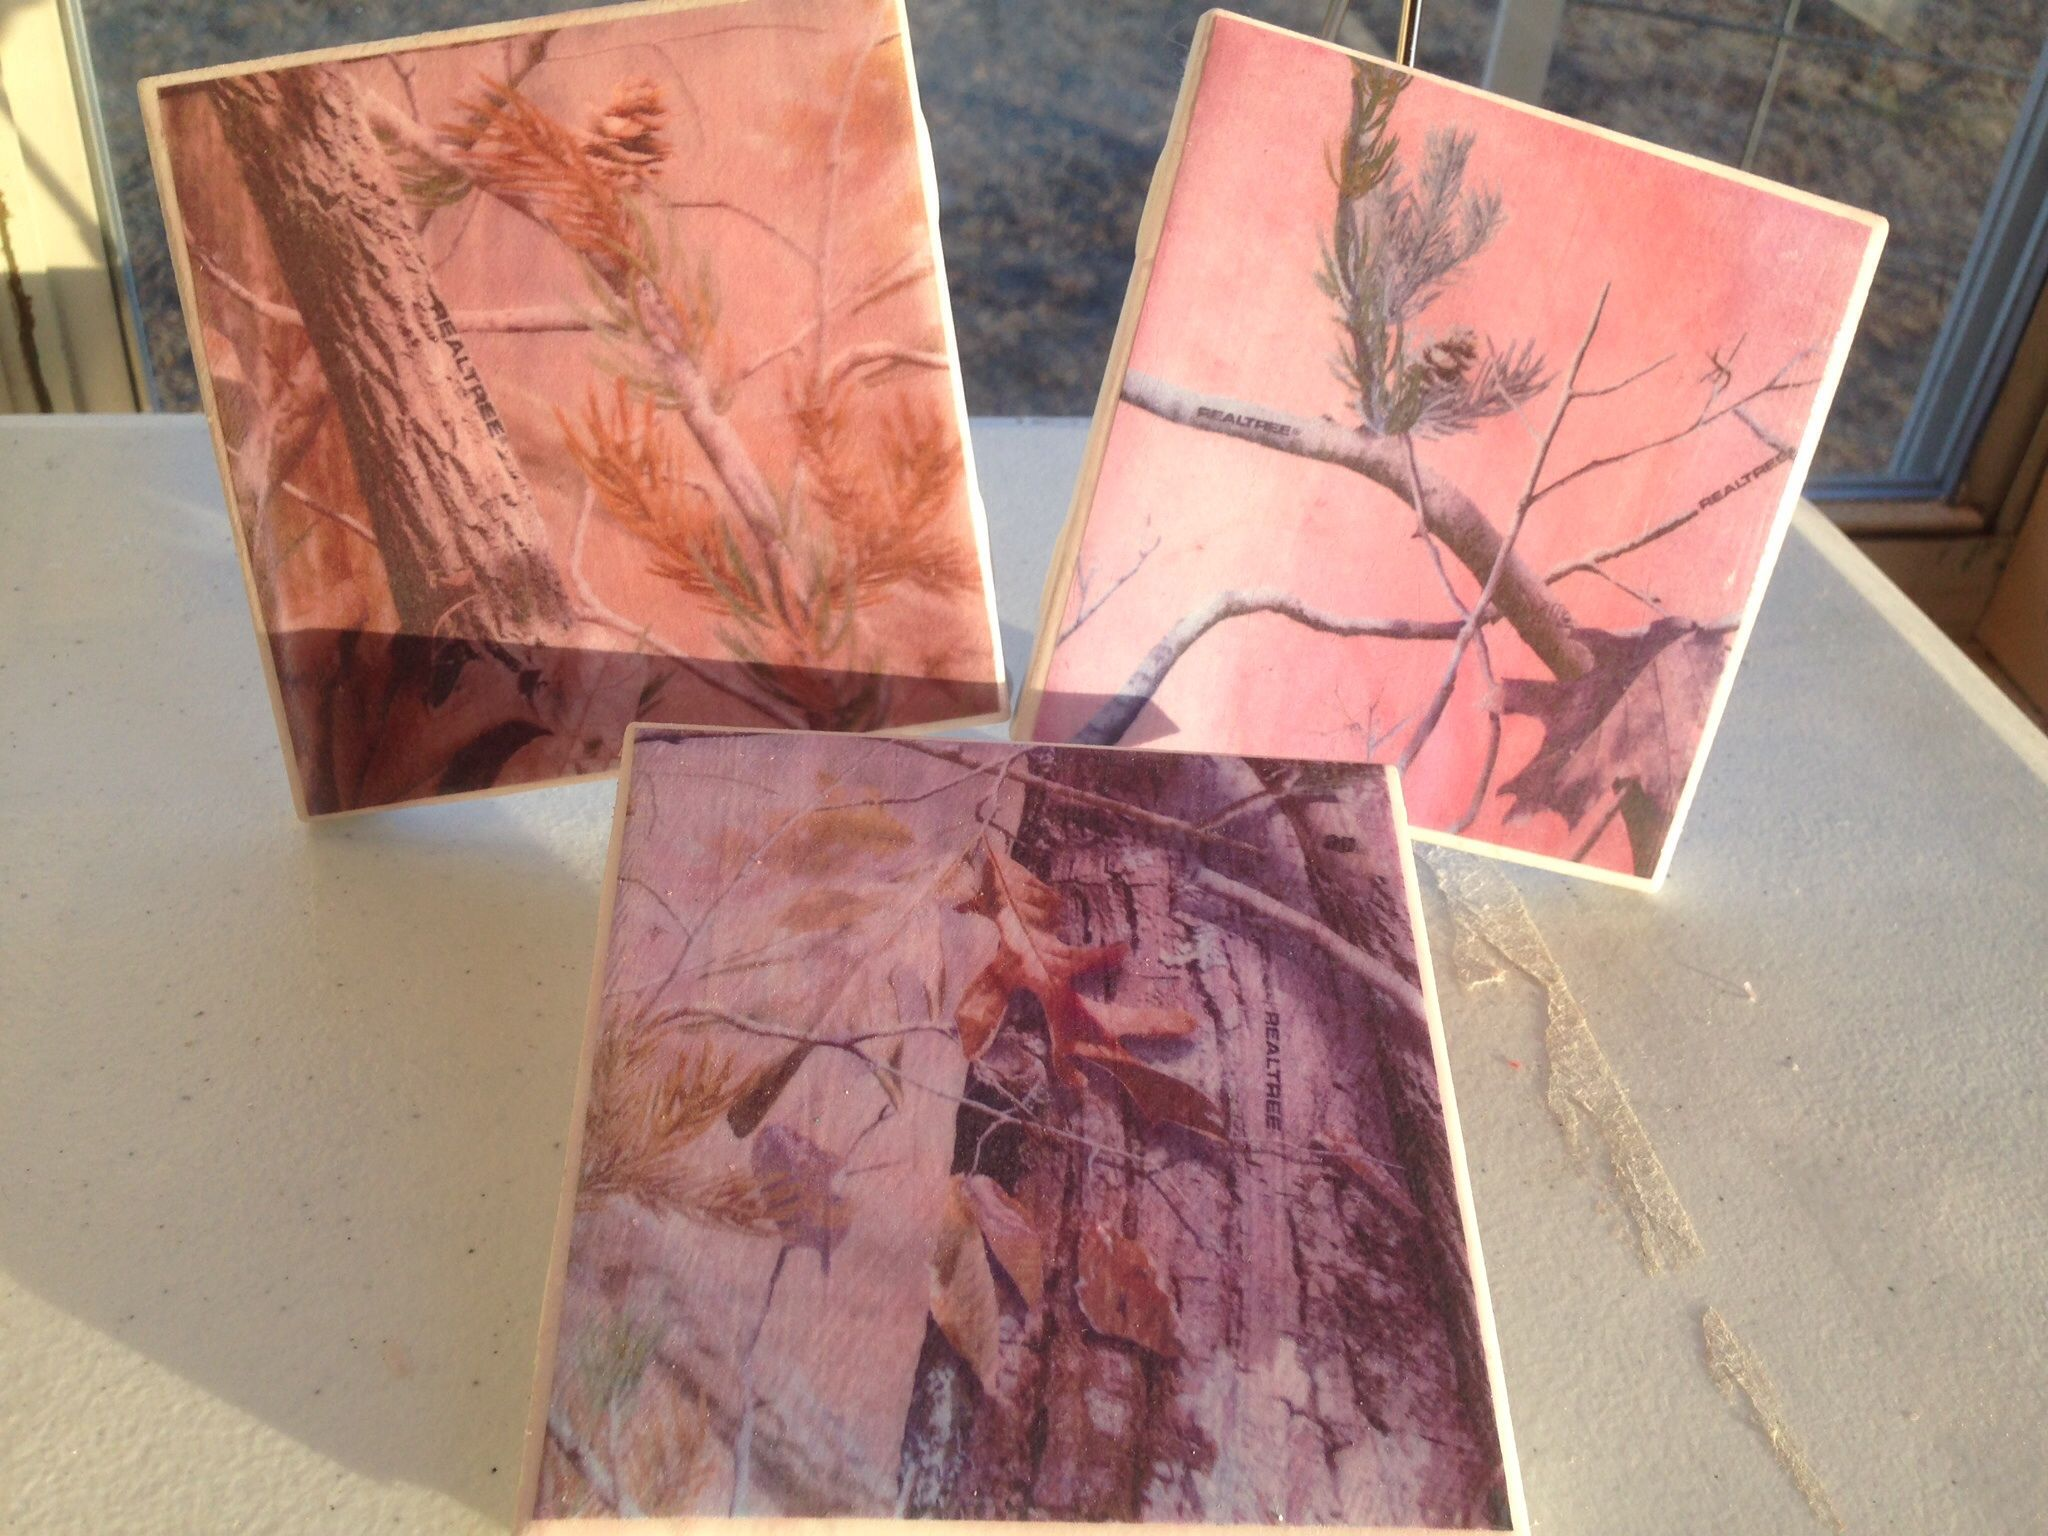 Set of 6 ceramic tile pink realtree coasters httpwww set of 6 ceramic tile pink realtree coasters httpreevescountrysewing doublecrazyfo Choice Image